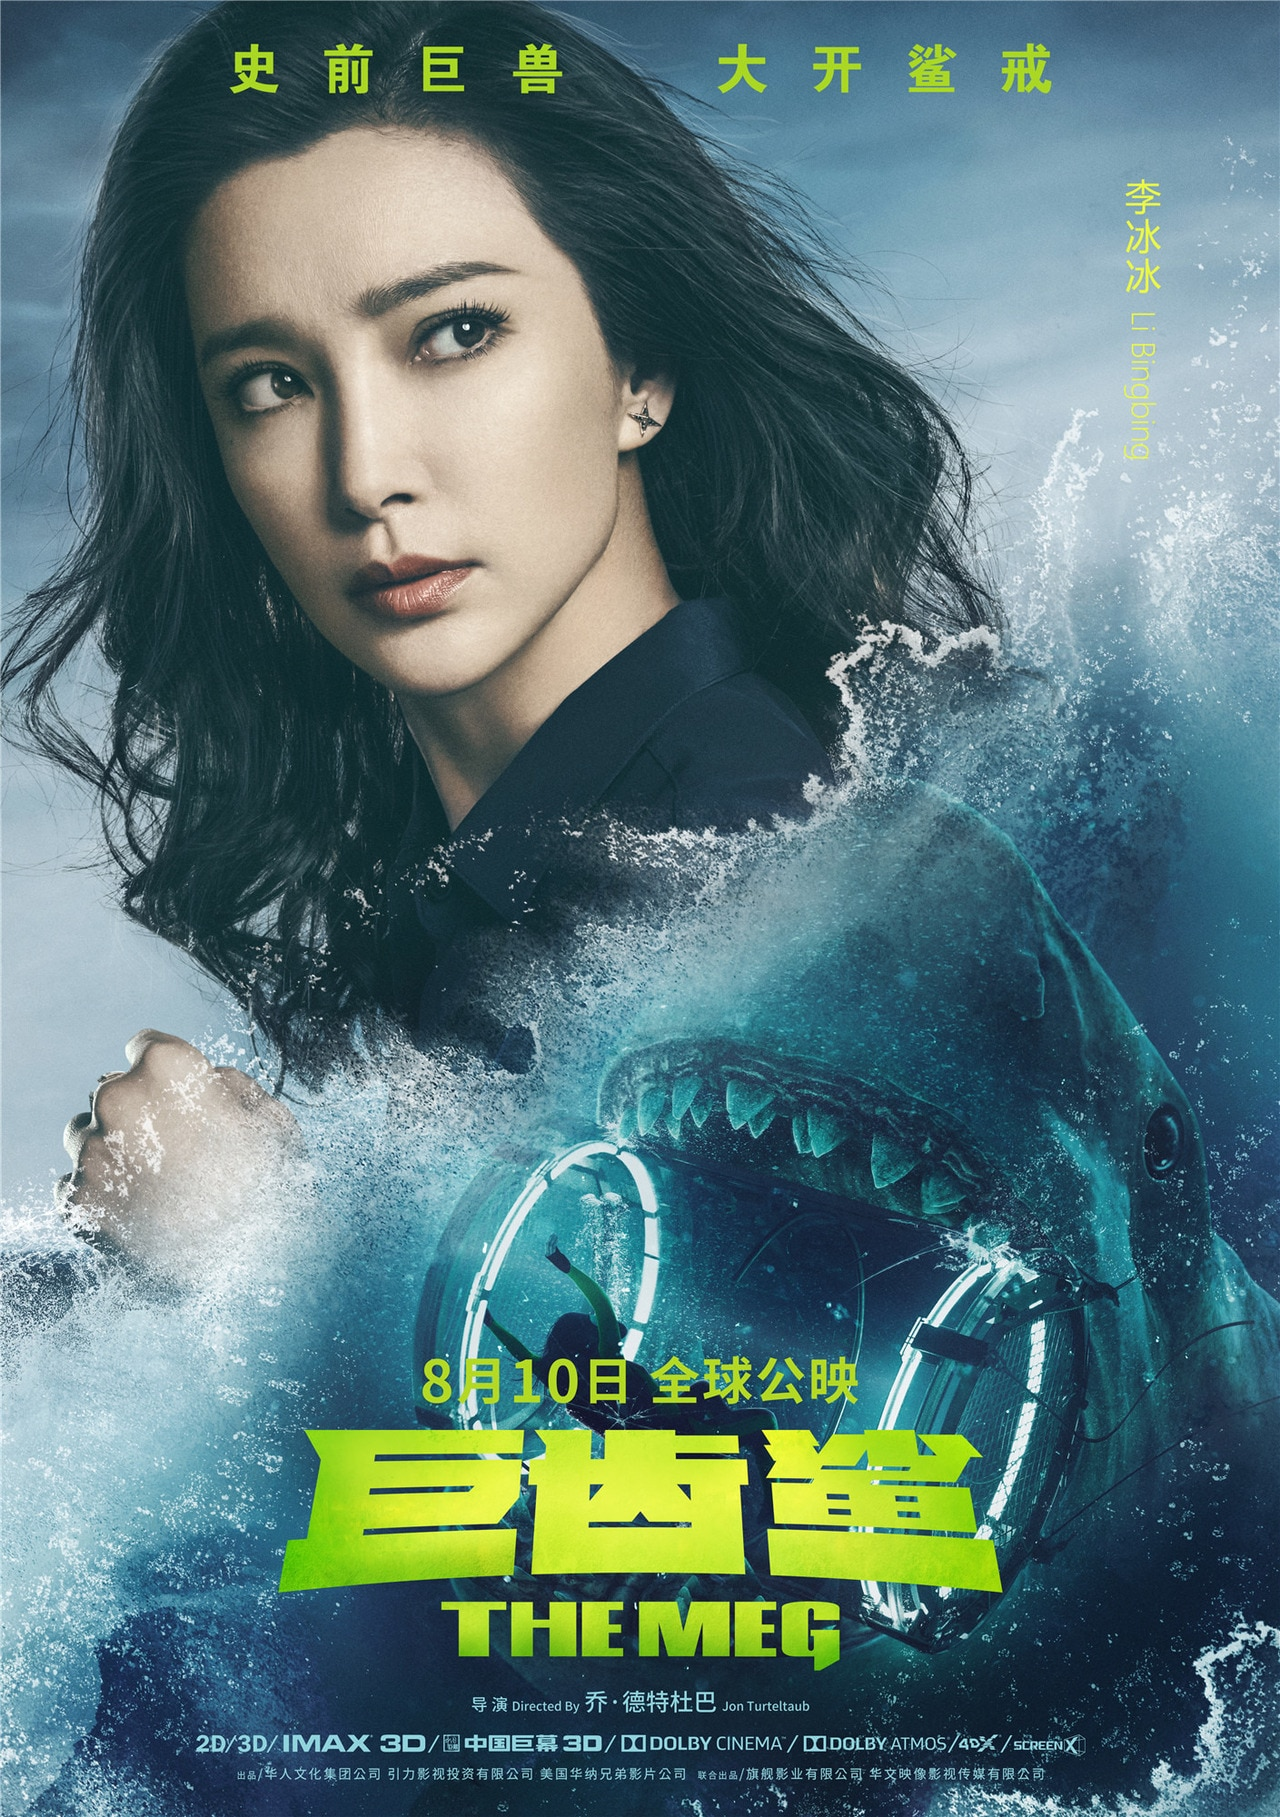 The Meg character Poster - Statham, Bingbing, and Rose Featured on New THE MEG Character Posters